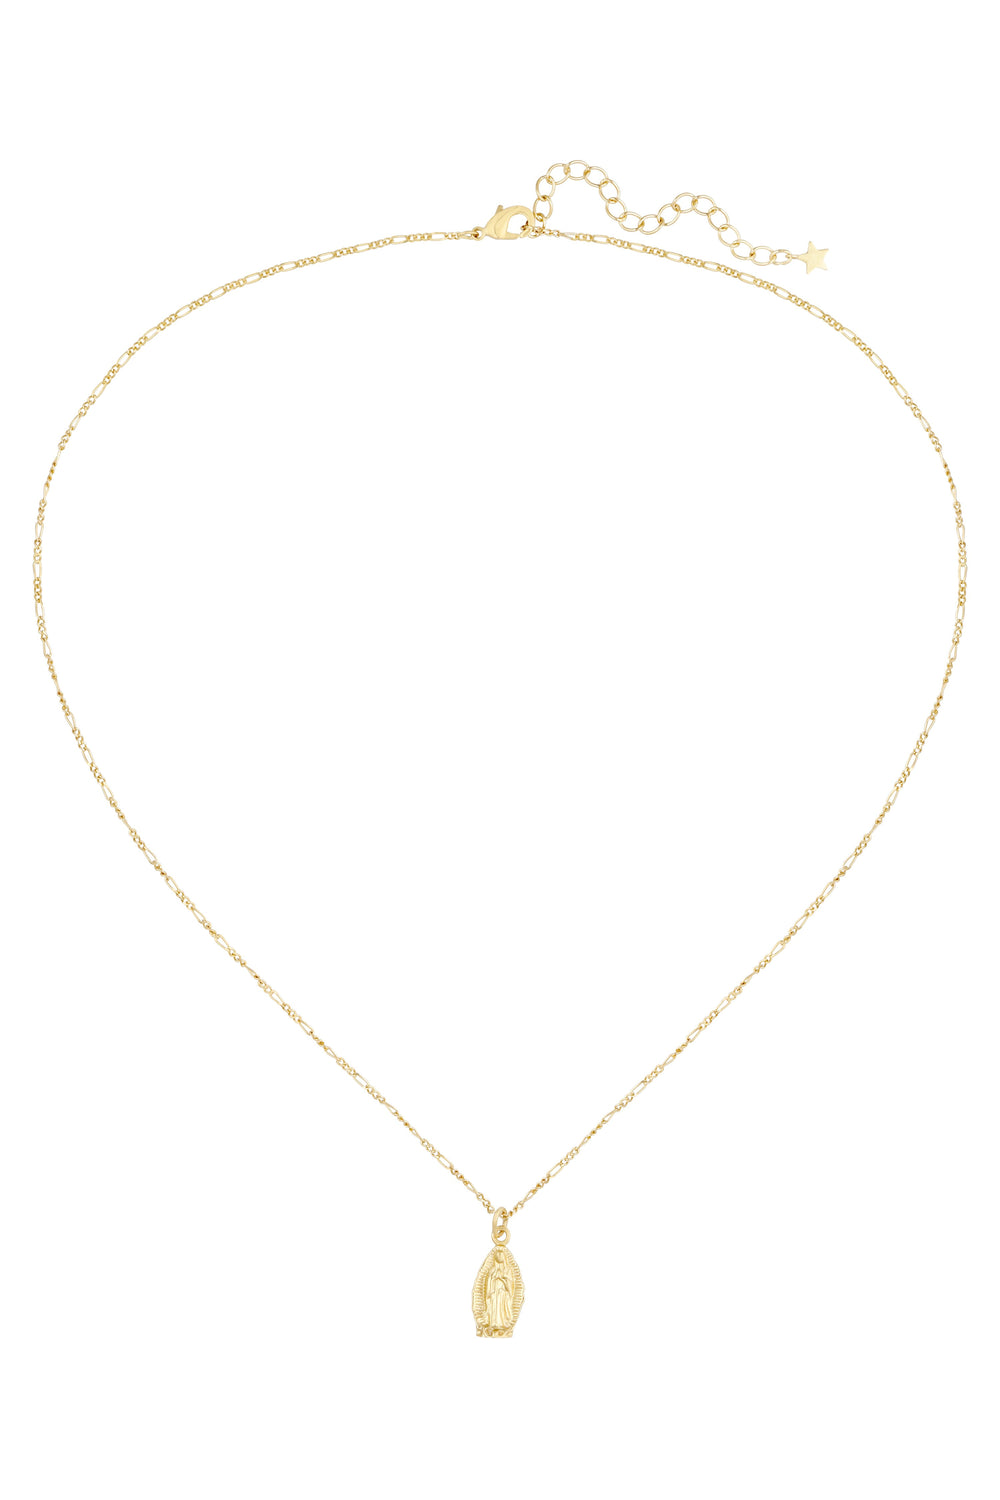 Celine Gold Necklace